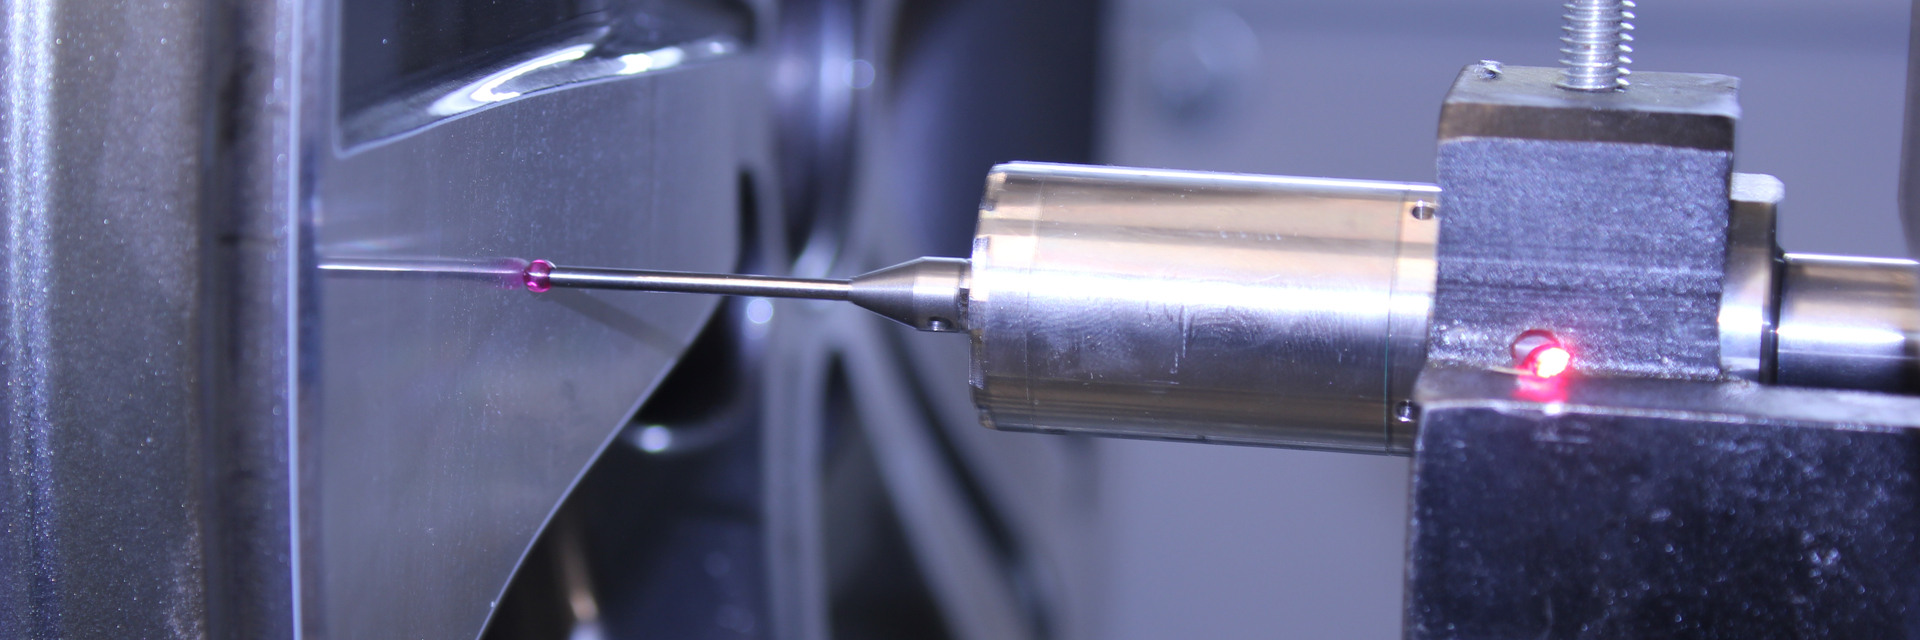 Ayce Systems' Alloy Wheel CNC Lathe Self Plotting Probe